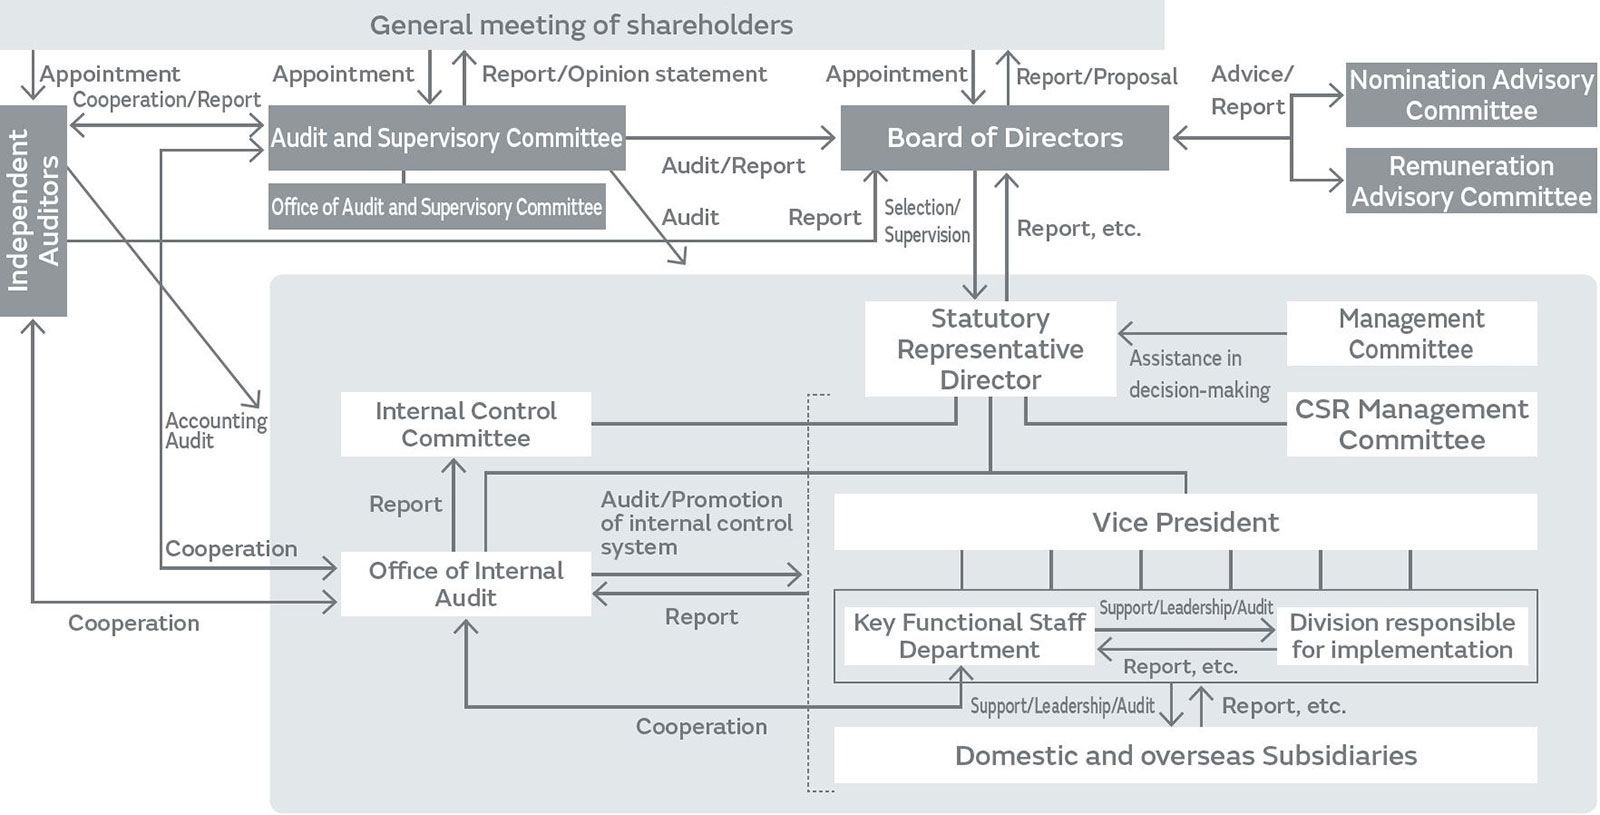 Structure of corporate governance system